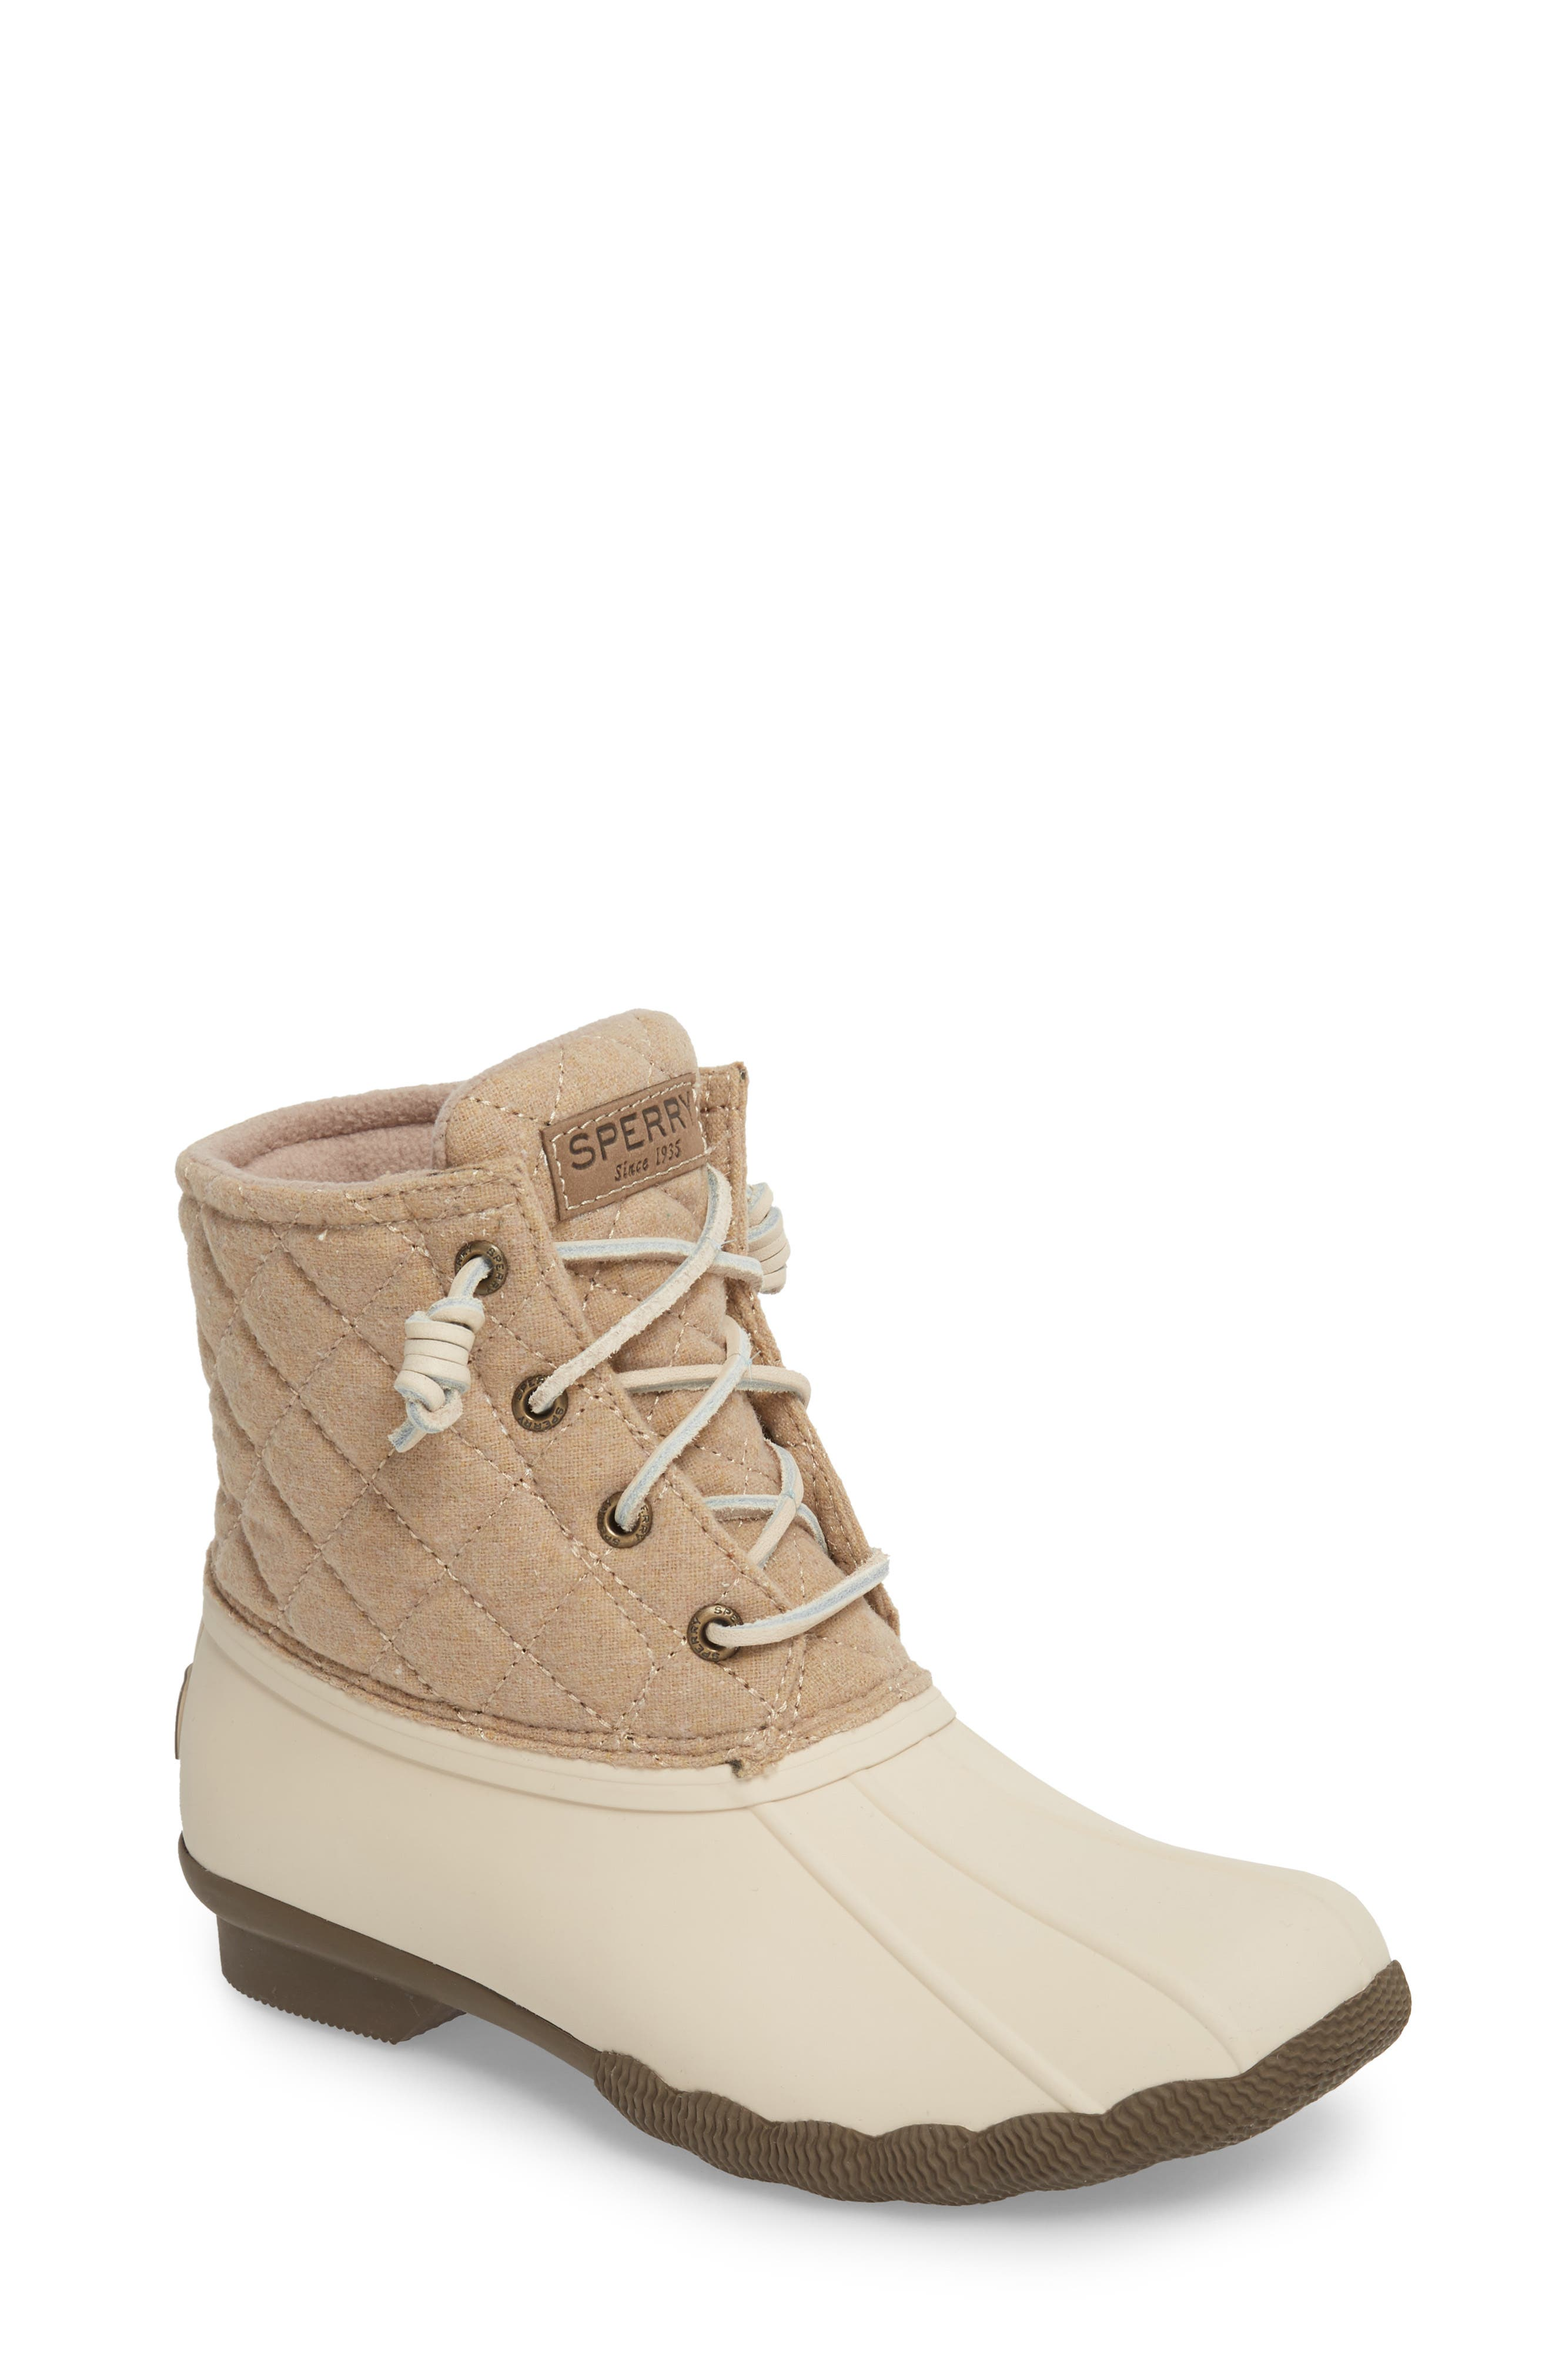 SPERRY,                             Saltwater Waterproof Rain Boot,                             Main thumbnail 1, color,                             OYSTER/ OAT